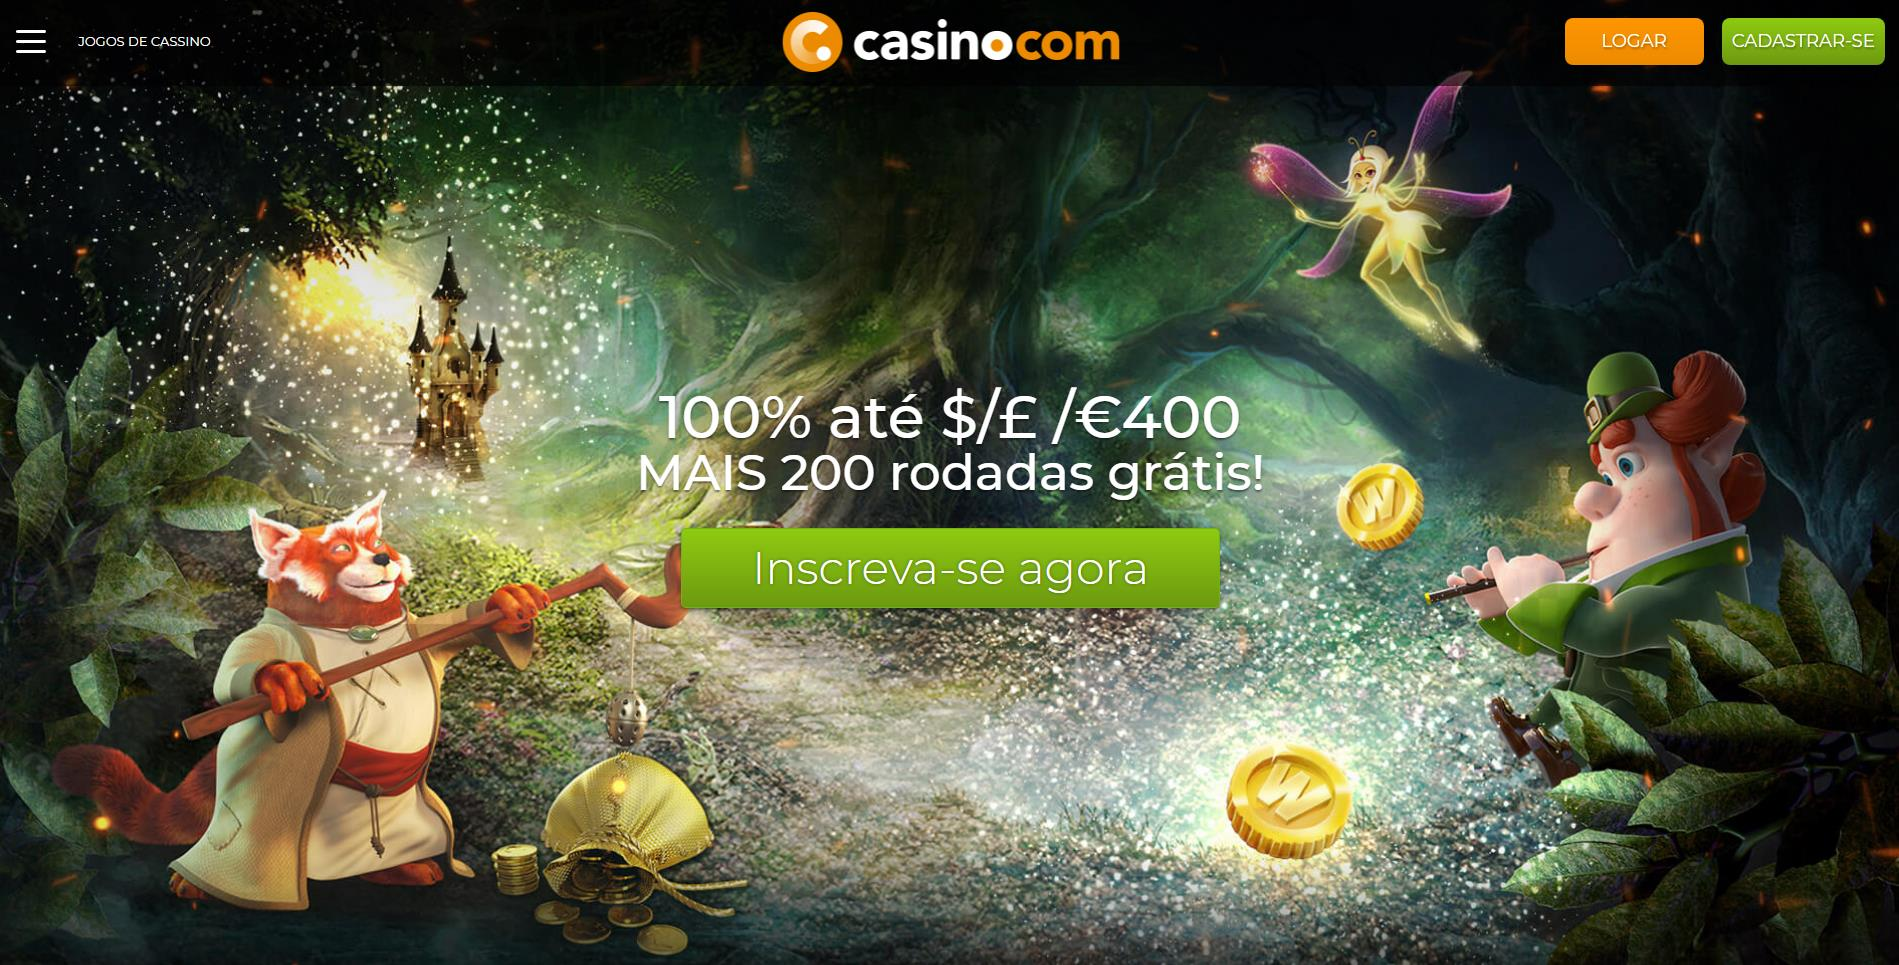 Superior Video games Practices At Blackjack Free of beste norske nettcasino charge Sport Multiply Necessary For Pulling Customers